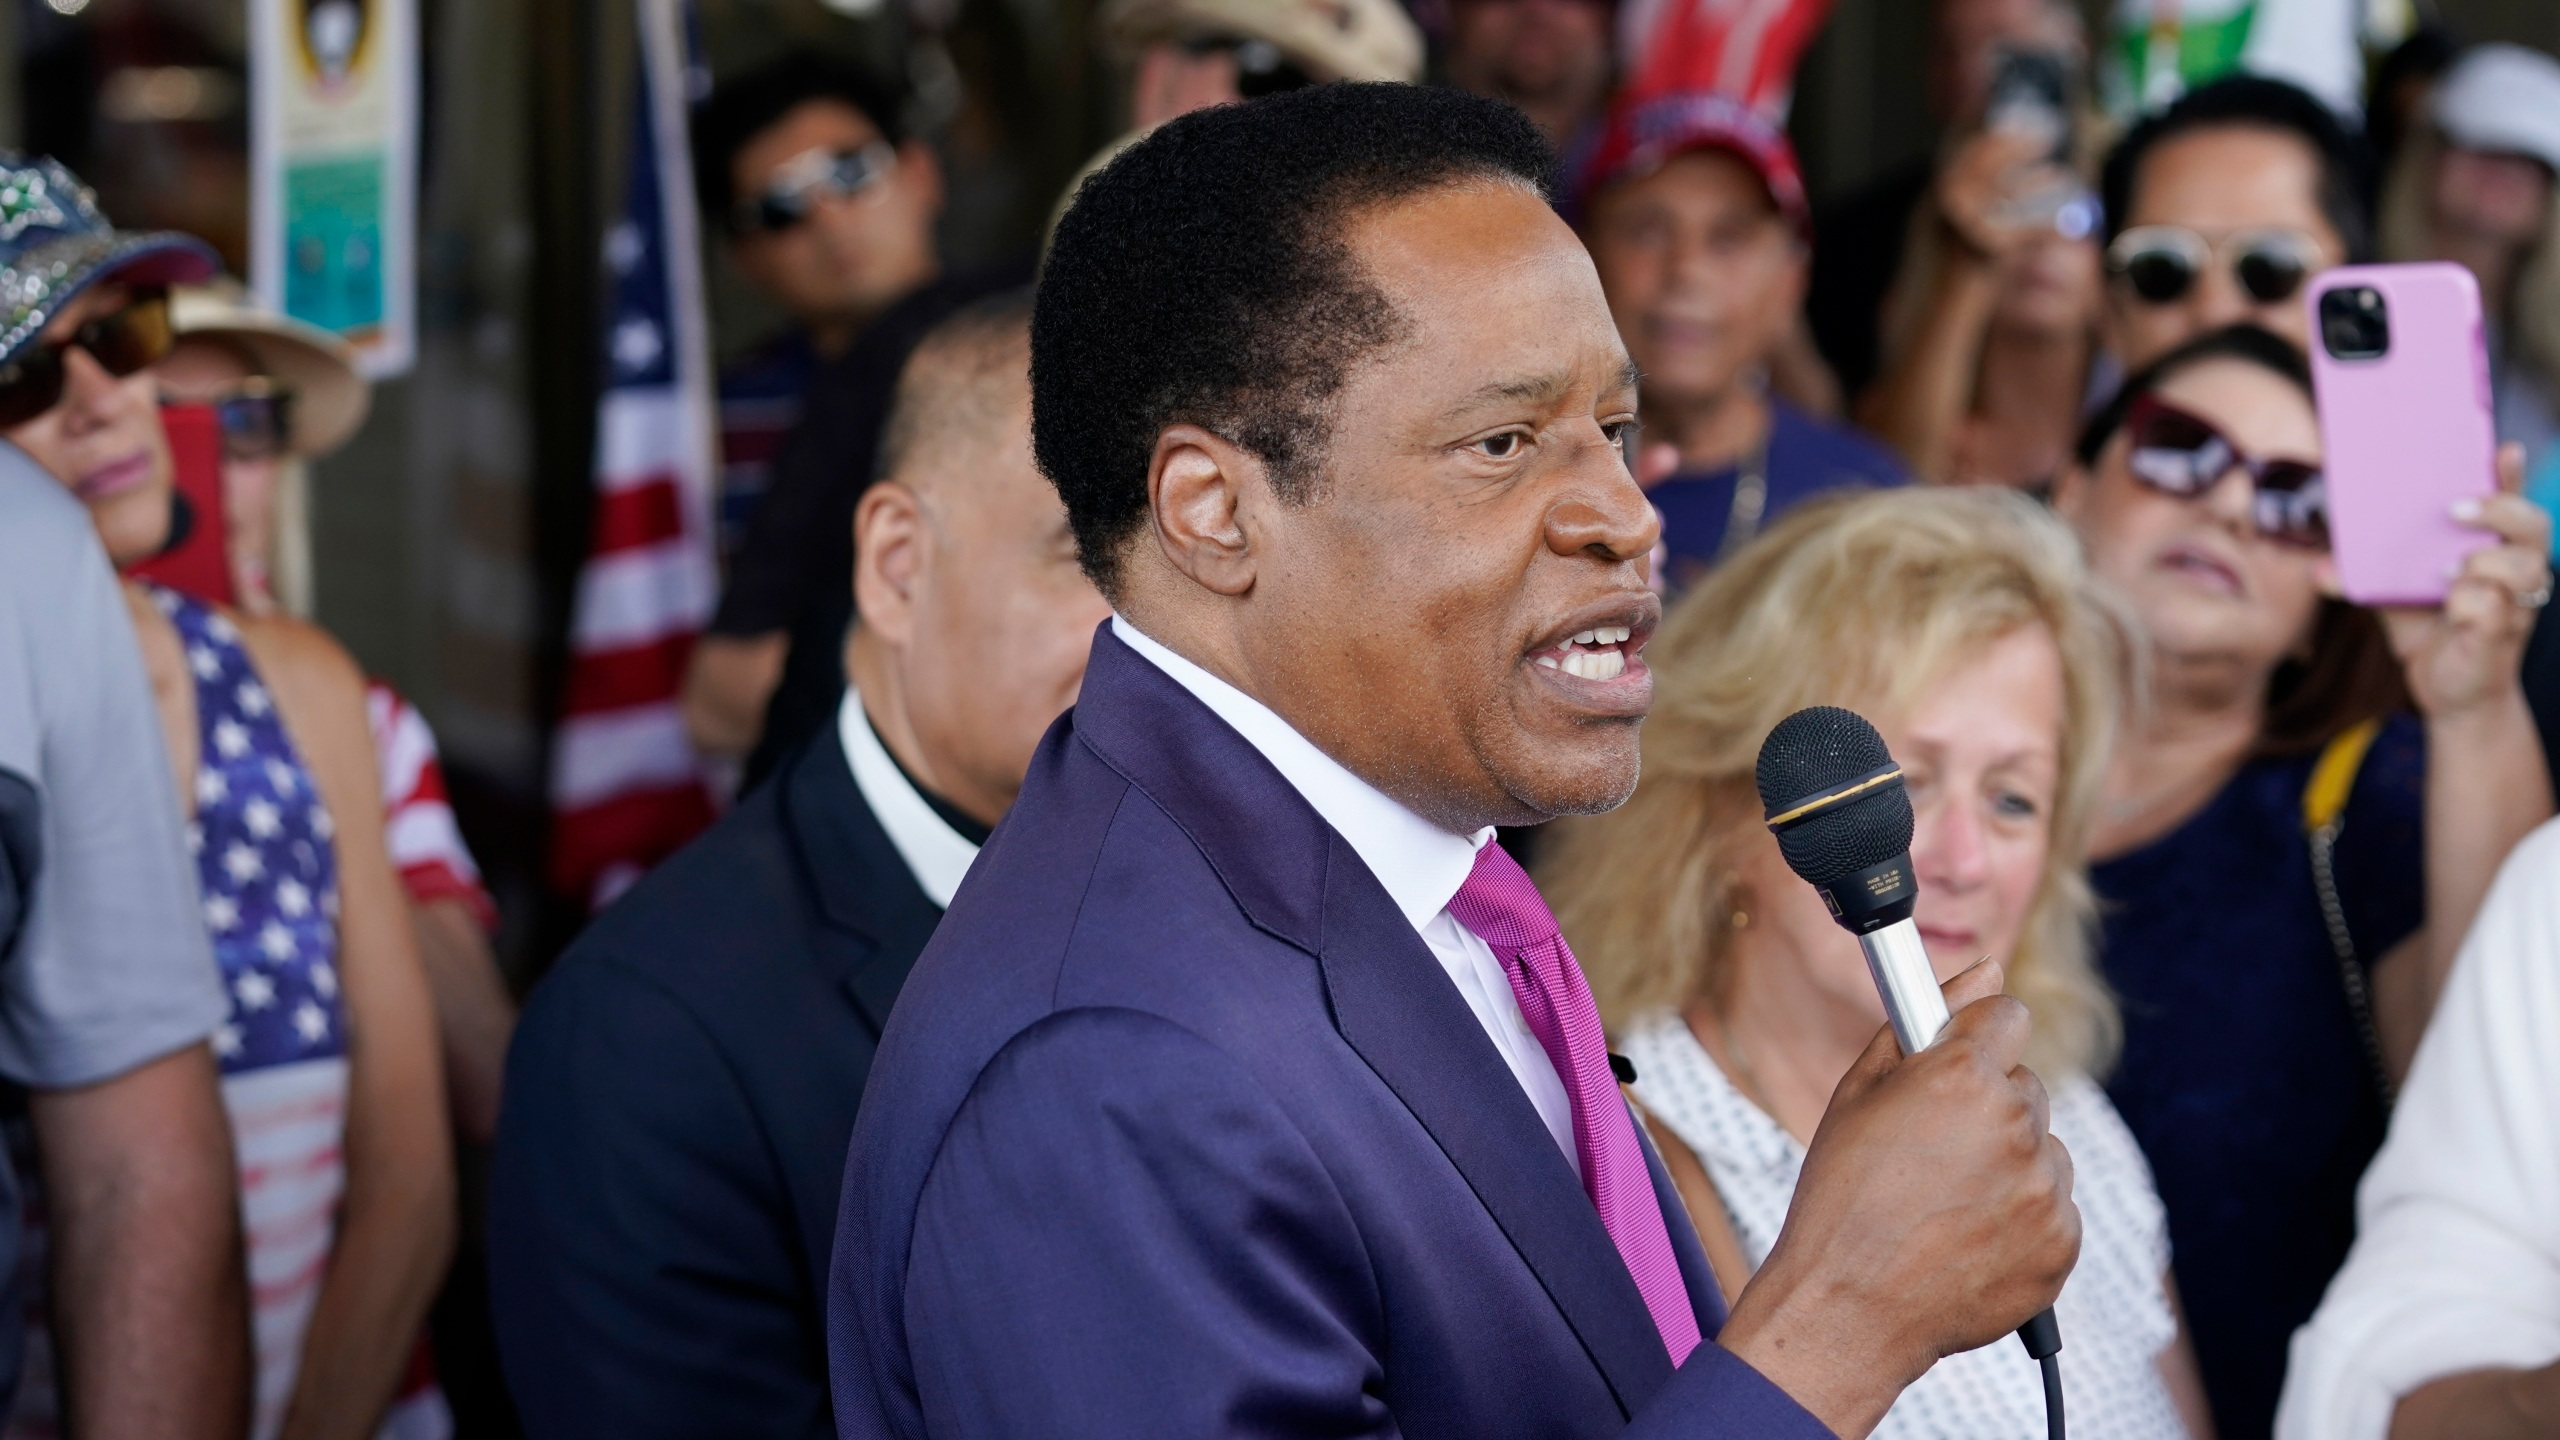 In this July 13, 2021, file photo, conservative radio talk show host Larry Elder speaks to supporters during a campaign stop in Norwalk, Calif. (AP Photo/Marcio Jose Sanchez, File)